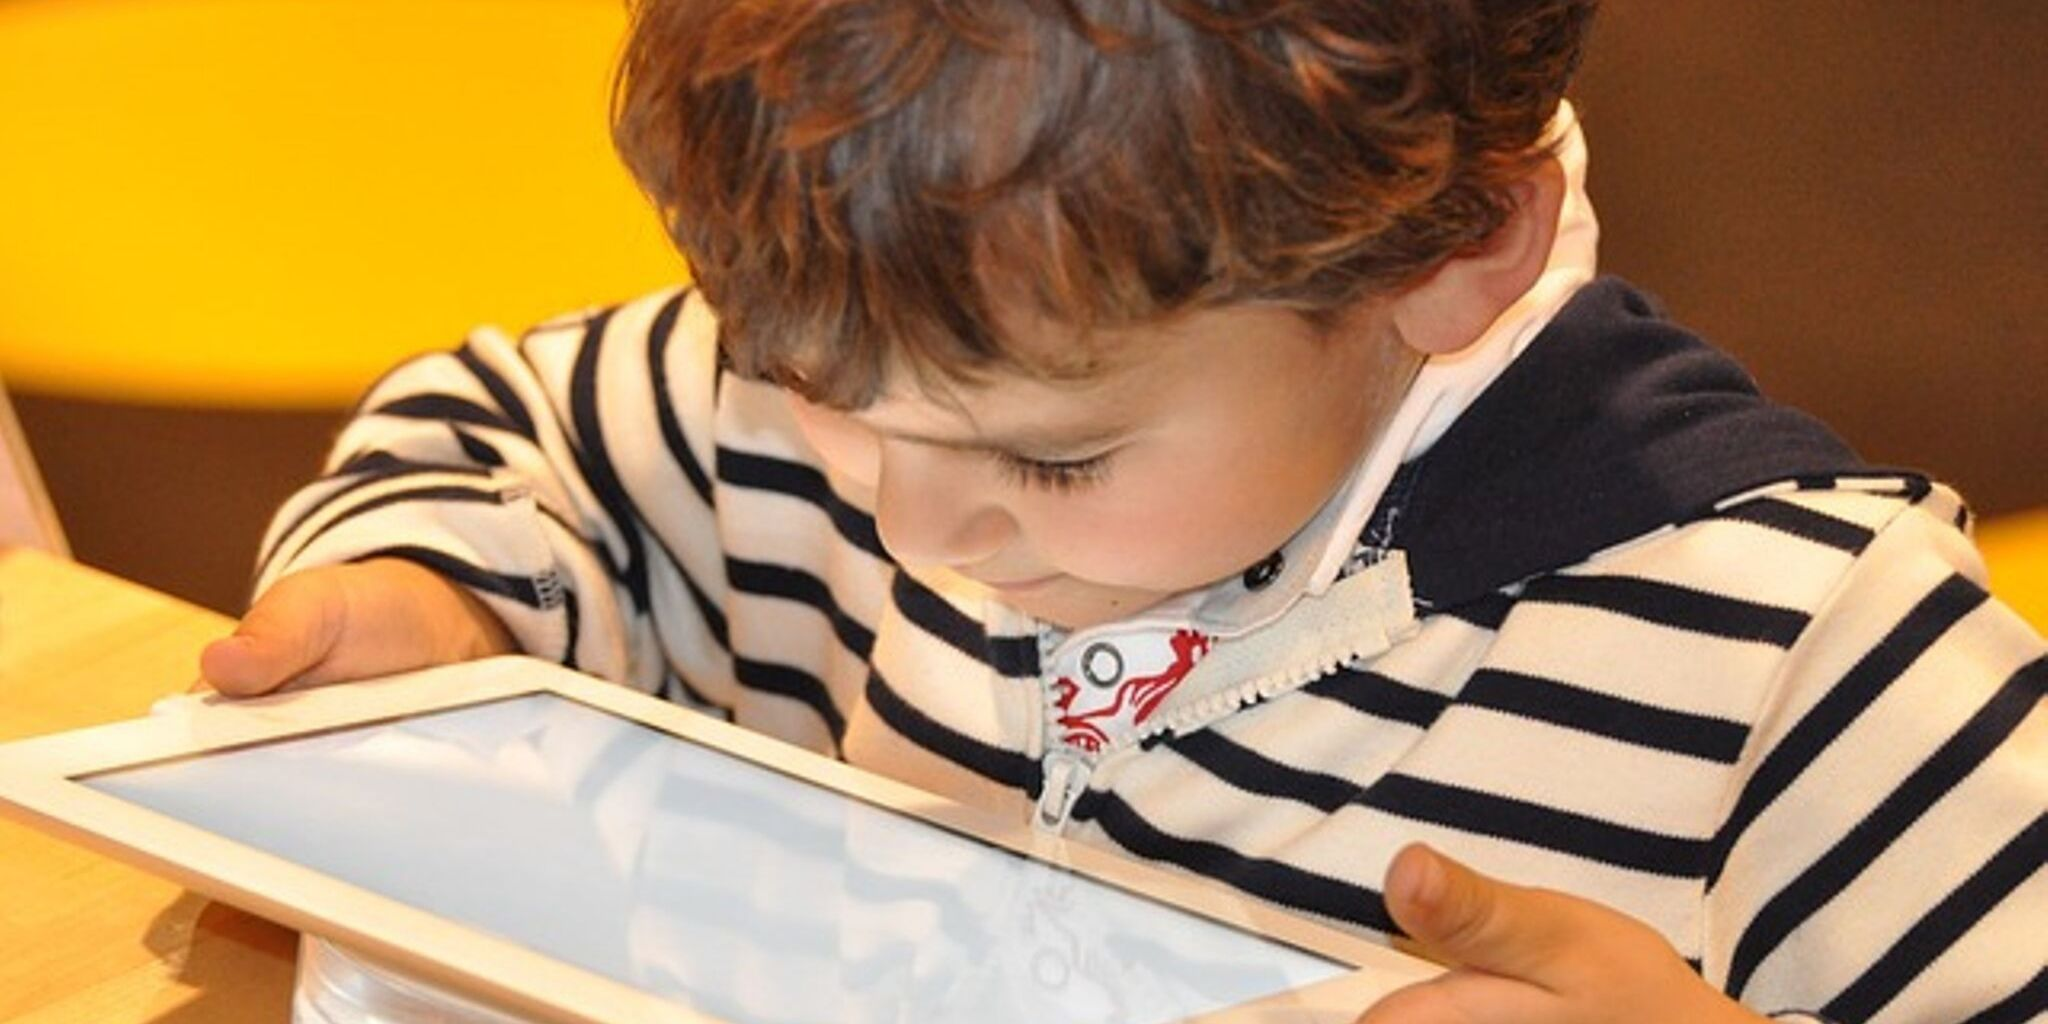 The pros and cons of kids and tech